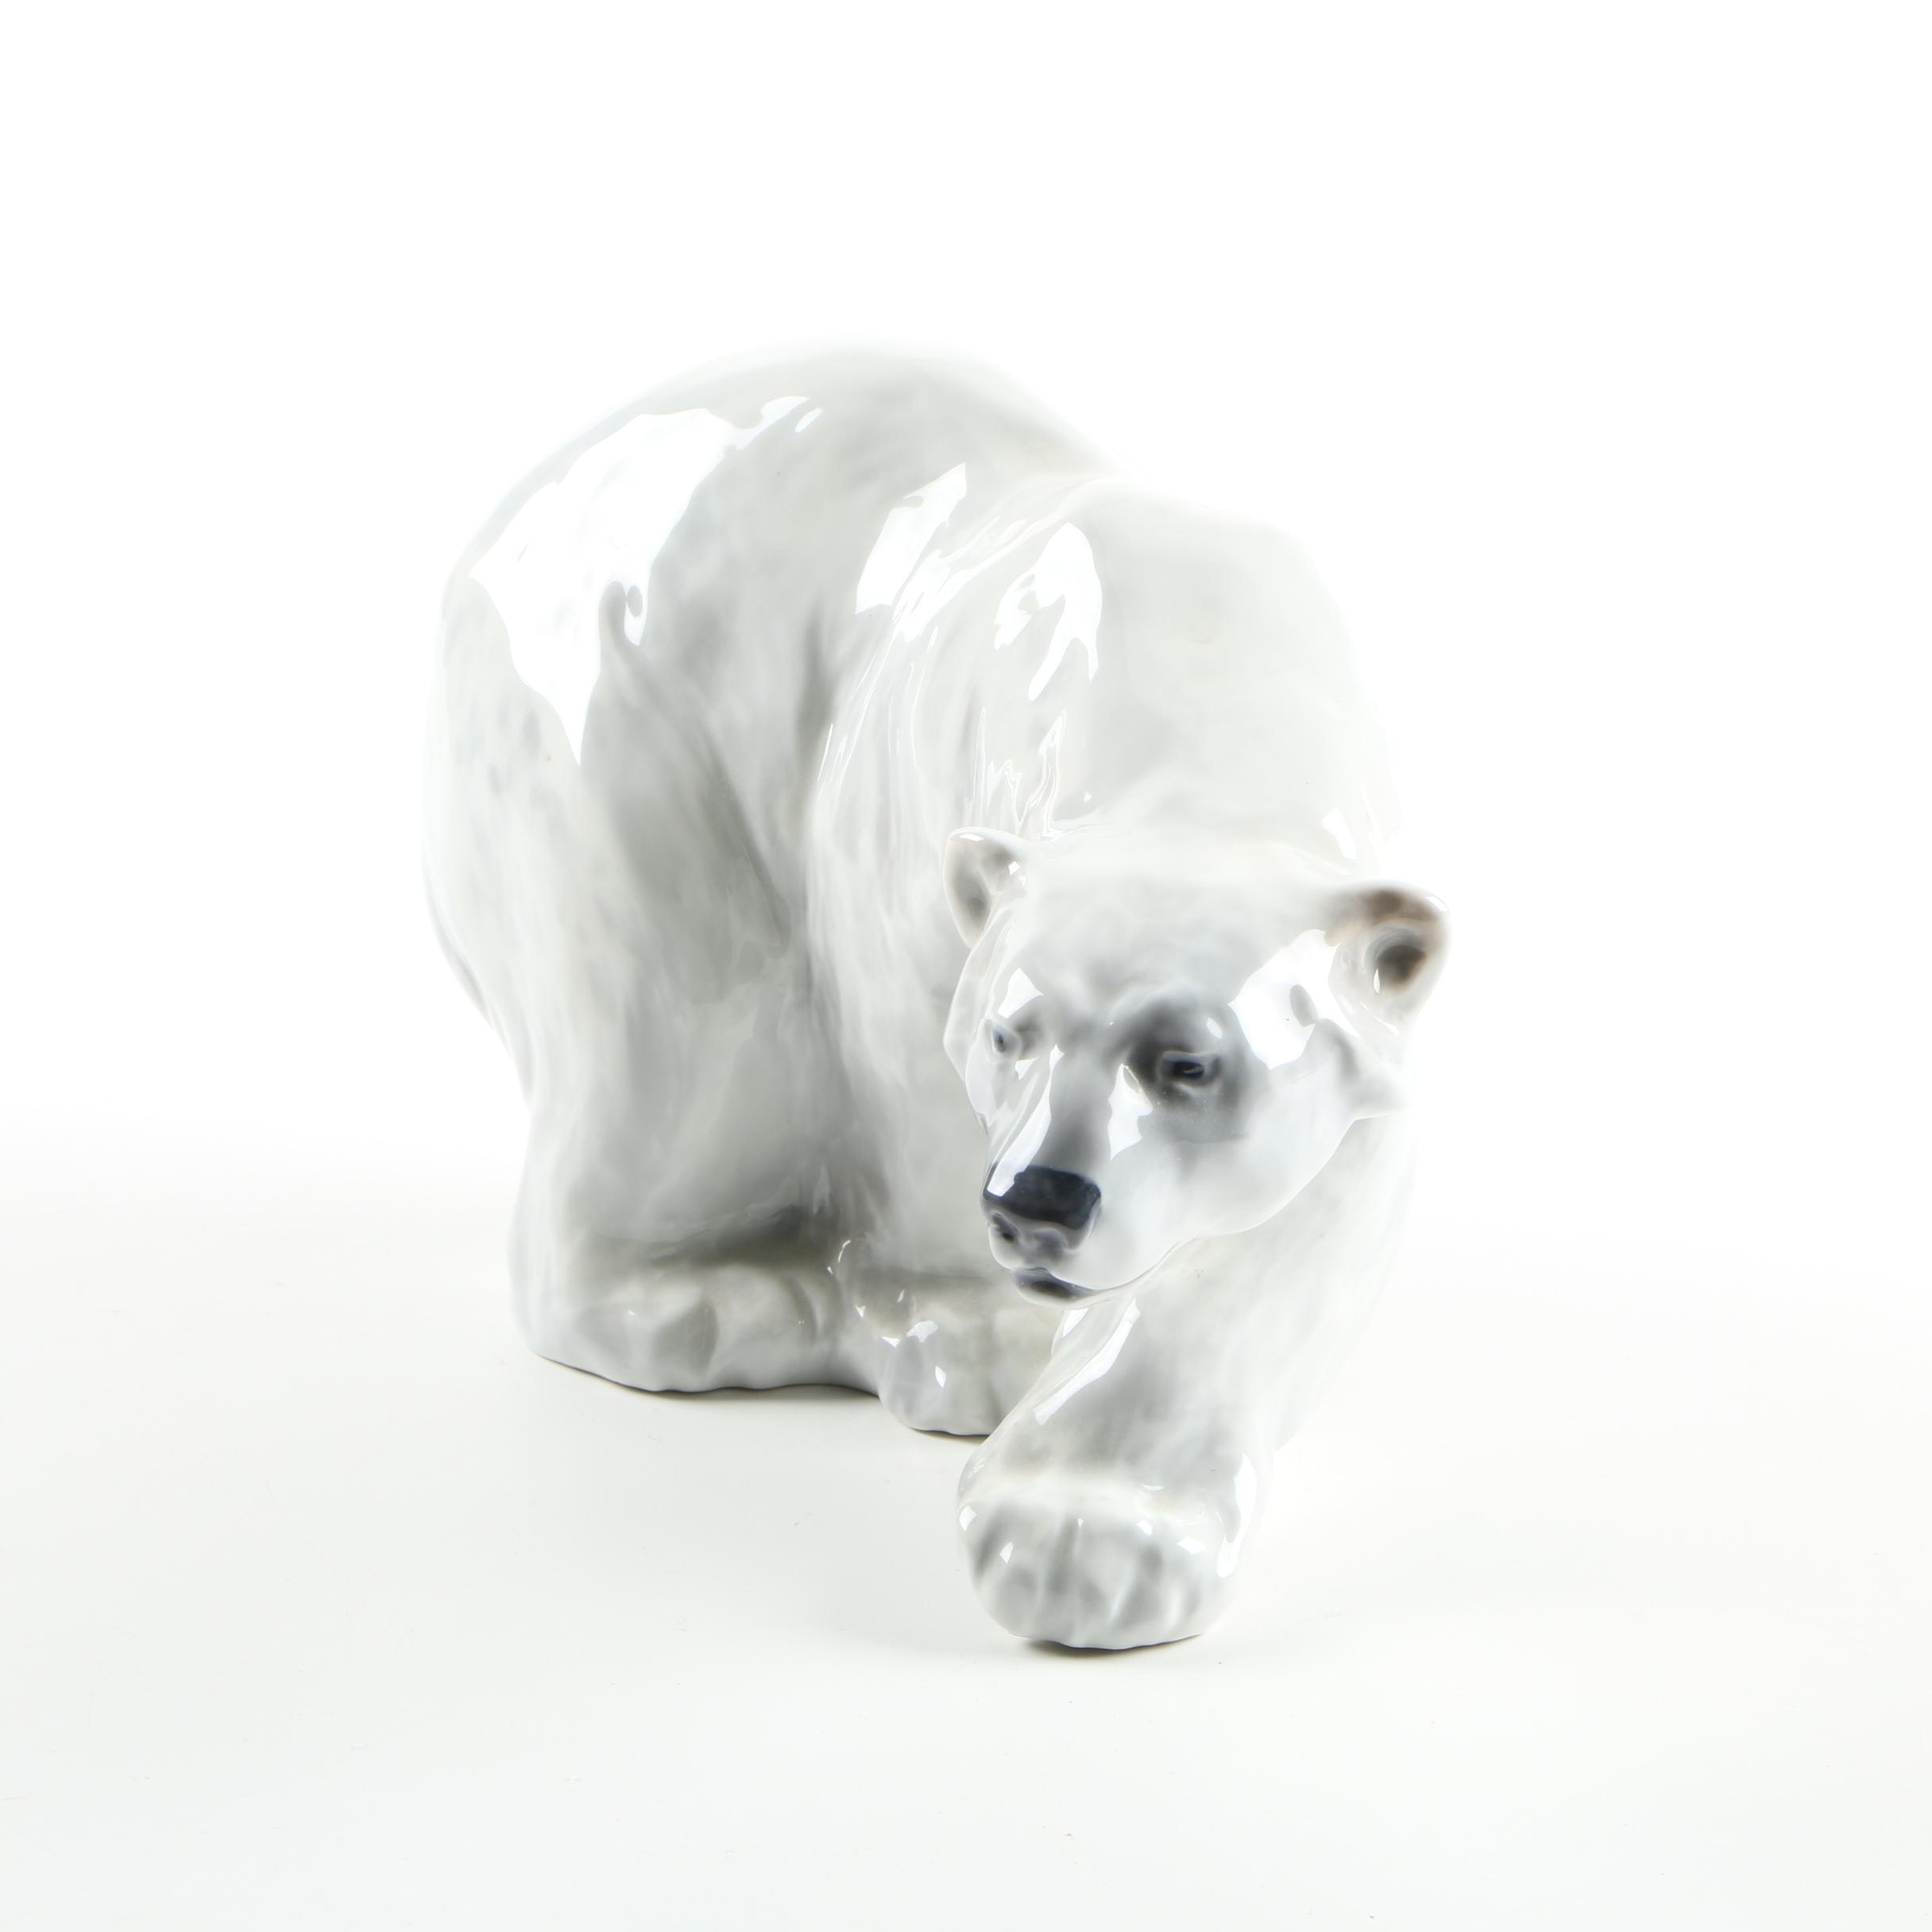 Royal Copenhagen Porcelain Polar Bear Figurine